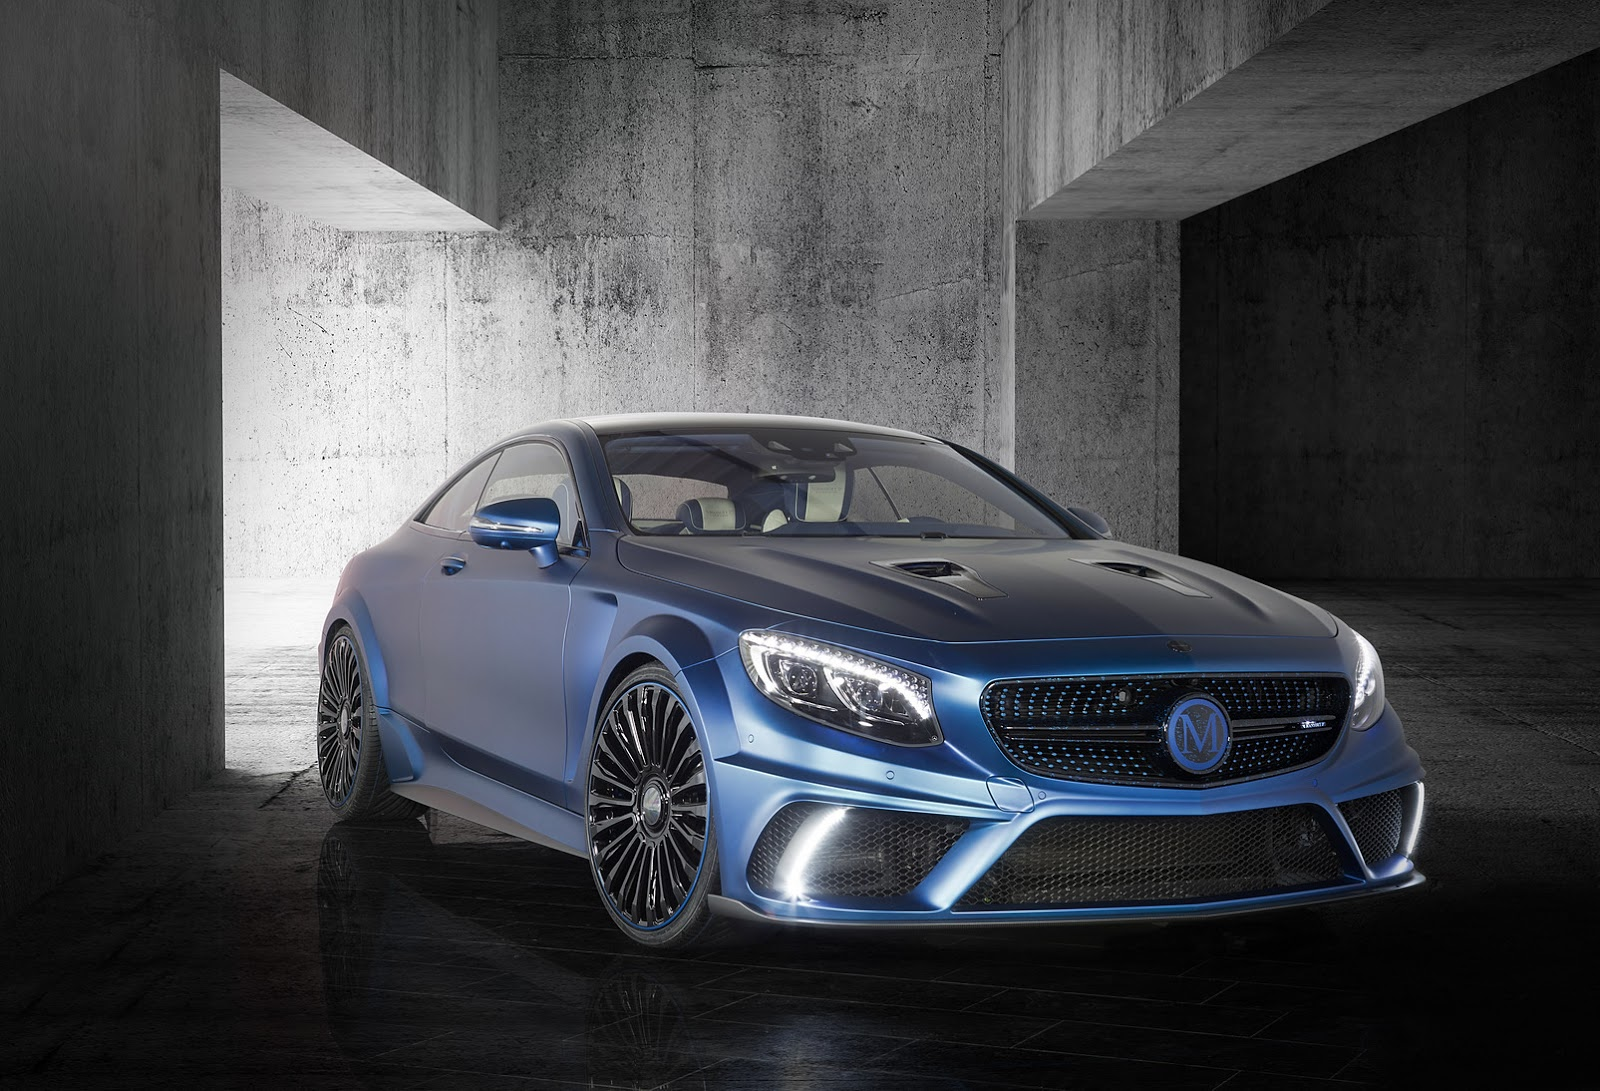 blue is the new black for the s63 amg coupe diamond edition says mansory autoevolution. Black Bedroom Furniture Sets. Home Design Ideas